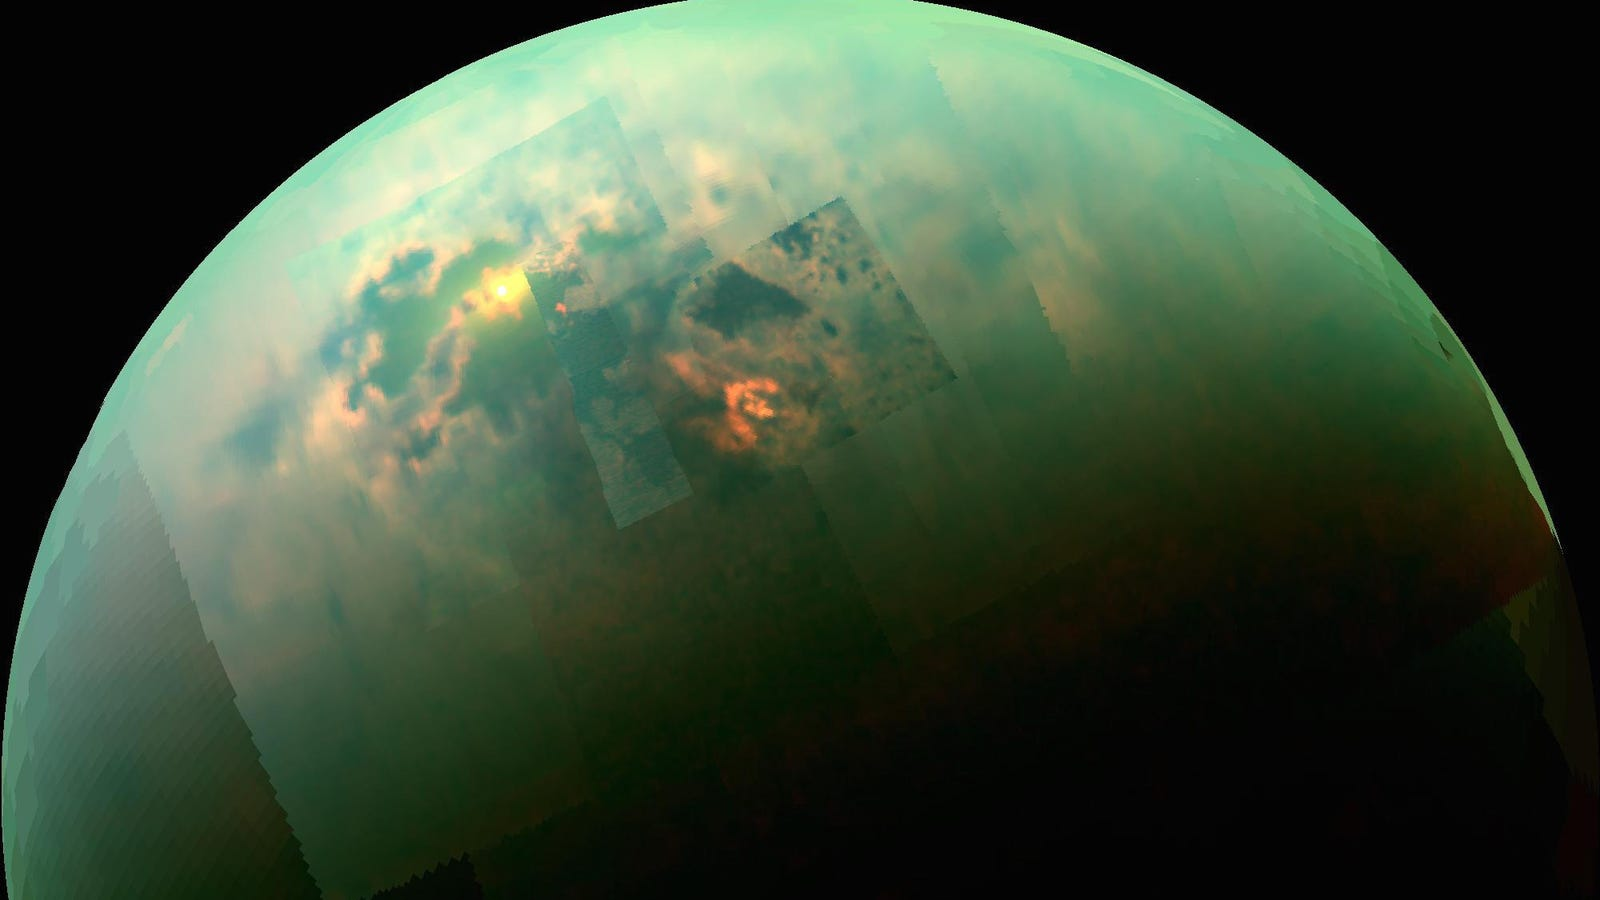 Saturn's Moon Titan Is Looking Even More Earth-Like